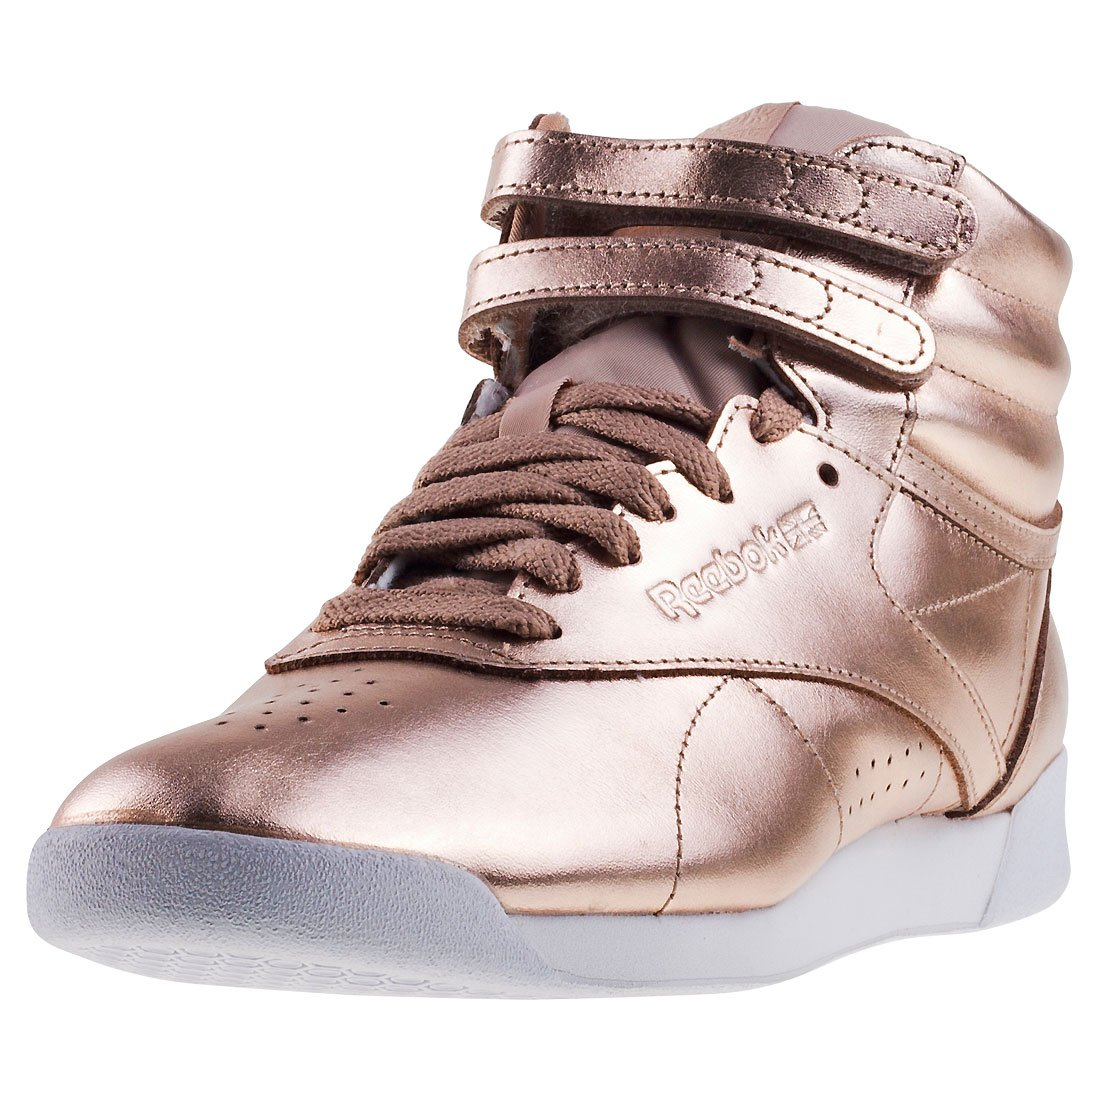 Reebok Freestyle Hi Metallic Womens Trainers Rose Gold - 6 UK